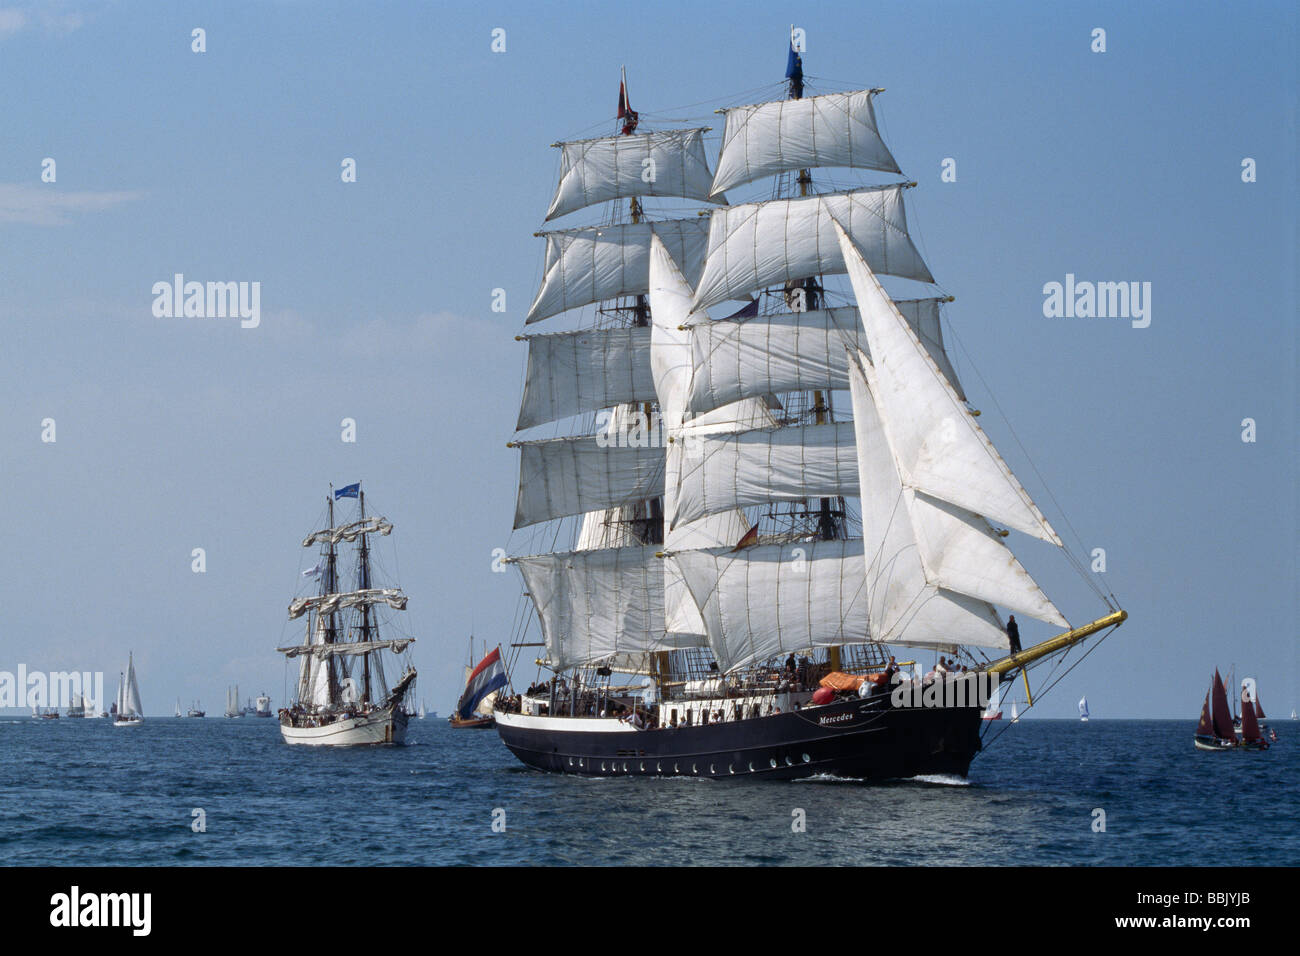 the dutch tall ship brig mercedes imo 5156658 at the annual stock photo royalty free image. Black Bedroom Furniture Sets. Home Design Ideas